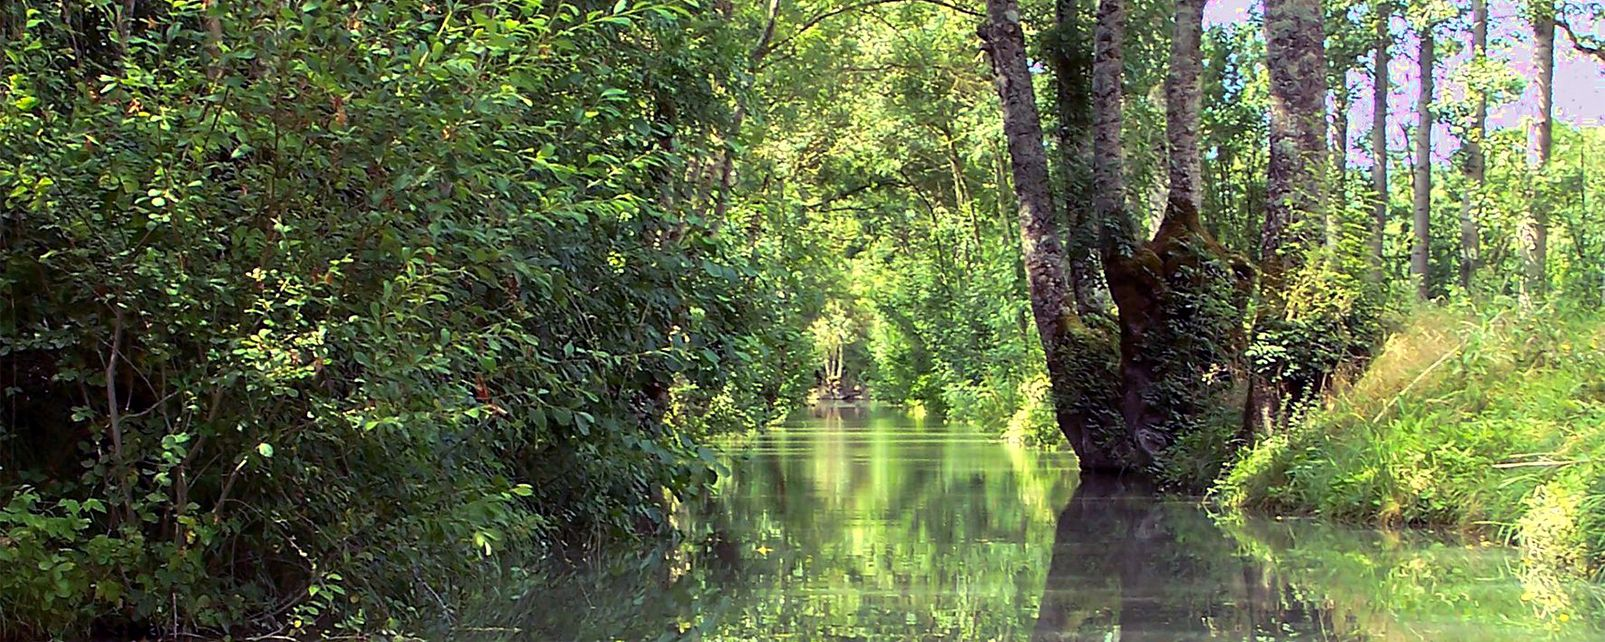 Marais Poitevin (Gulf of Poitou marsh) , The Poitevin Marsh , France